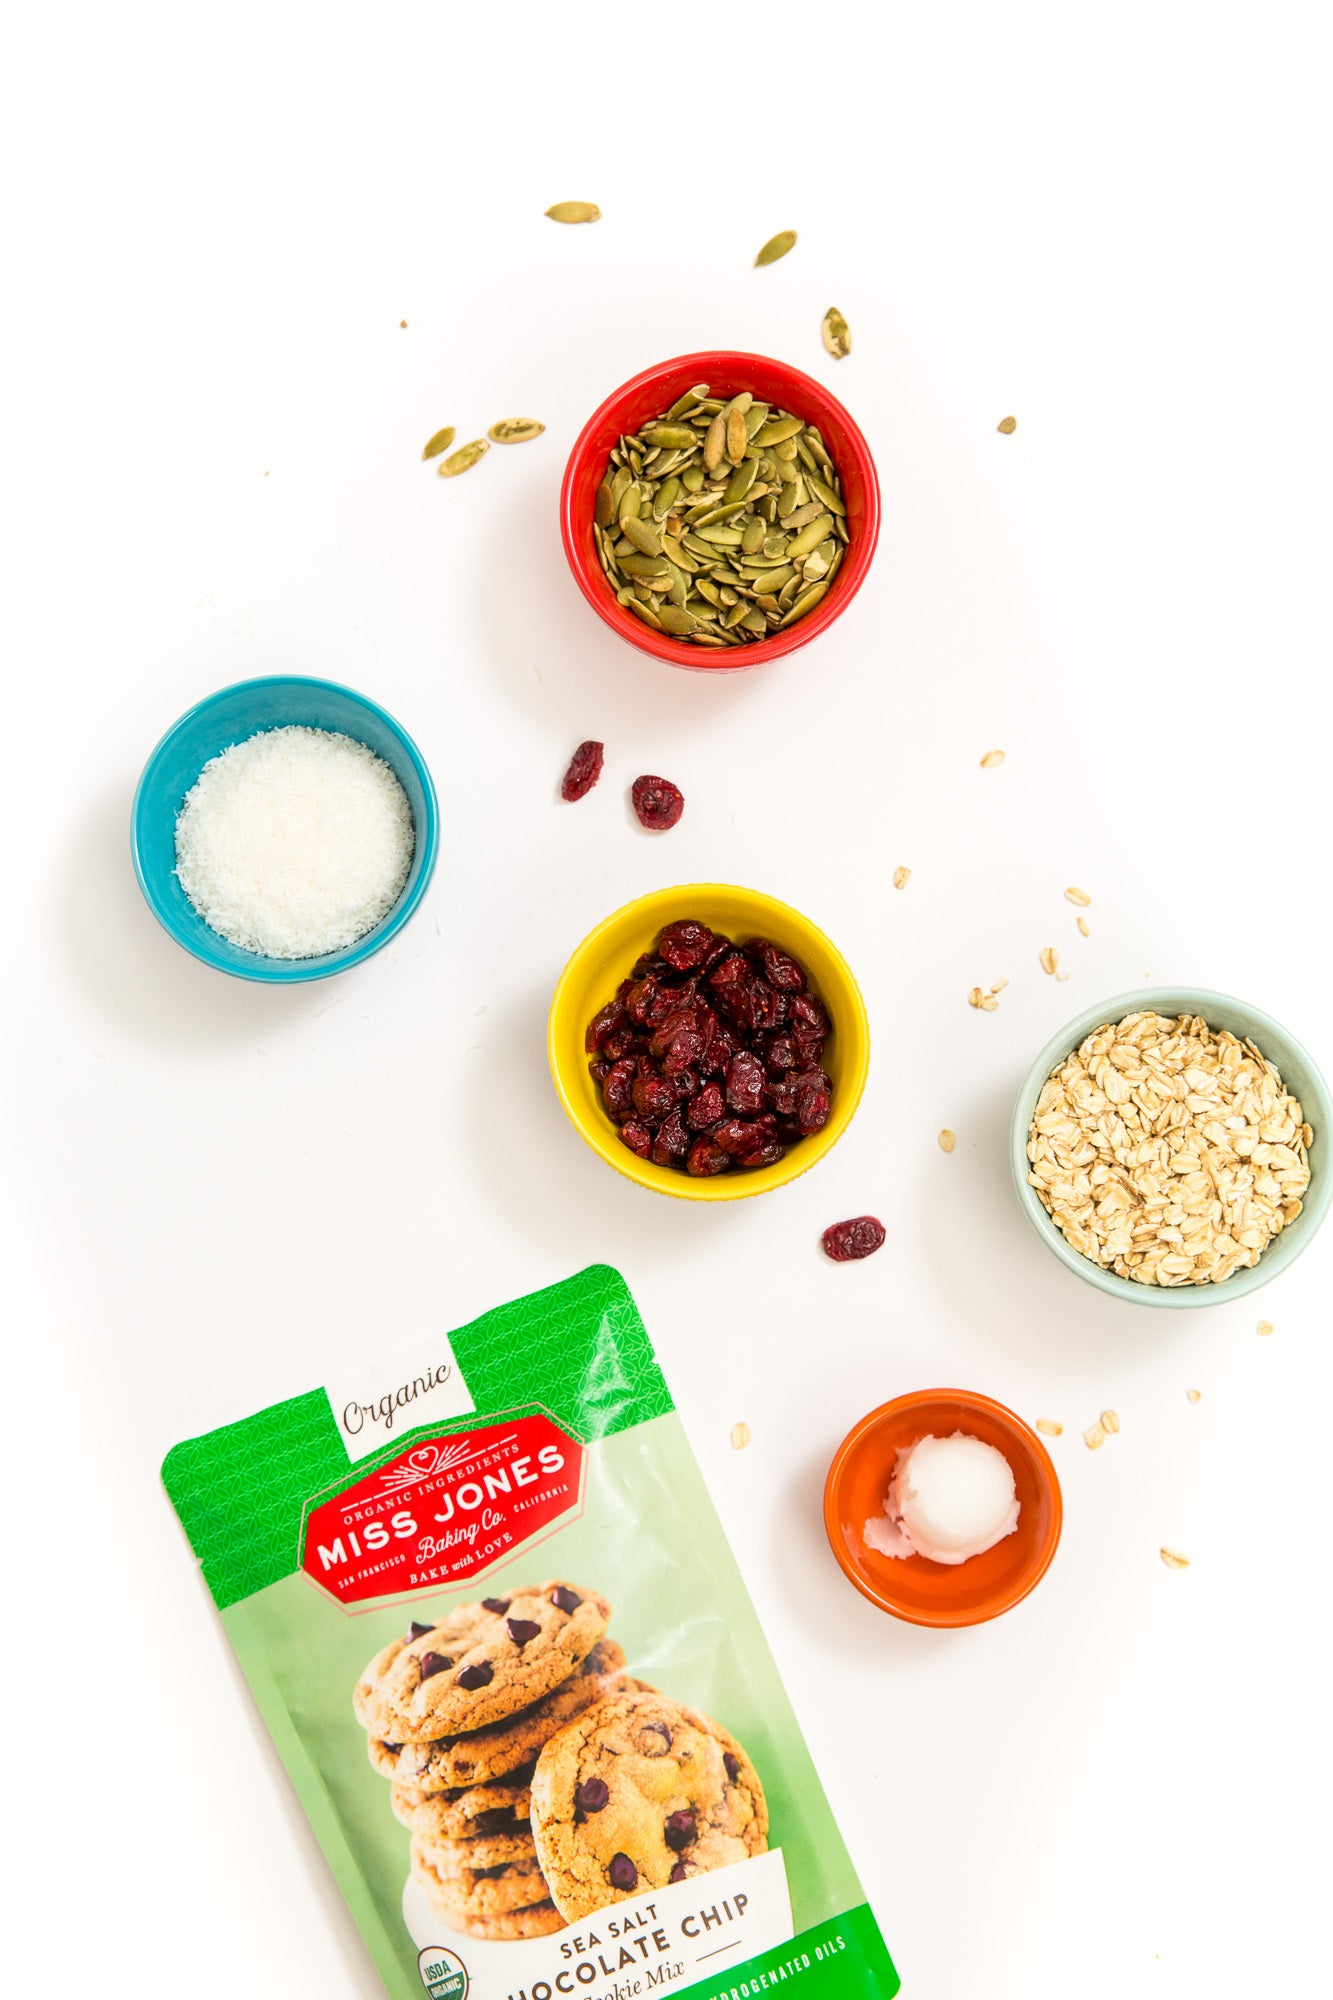 Image of Miss Jones Baking Co Sea Salt Chocolate Chip Cookie Mix next to bowls of coconut flakes, cranberries, pumpkin seeds and oats used for Miss Jones Baking Co Happy Trails Mix Cookie Bites recipe